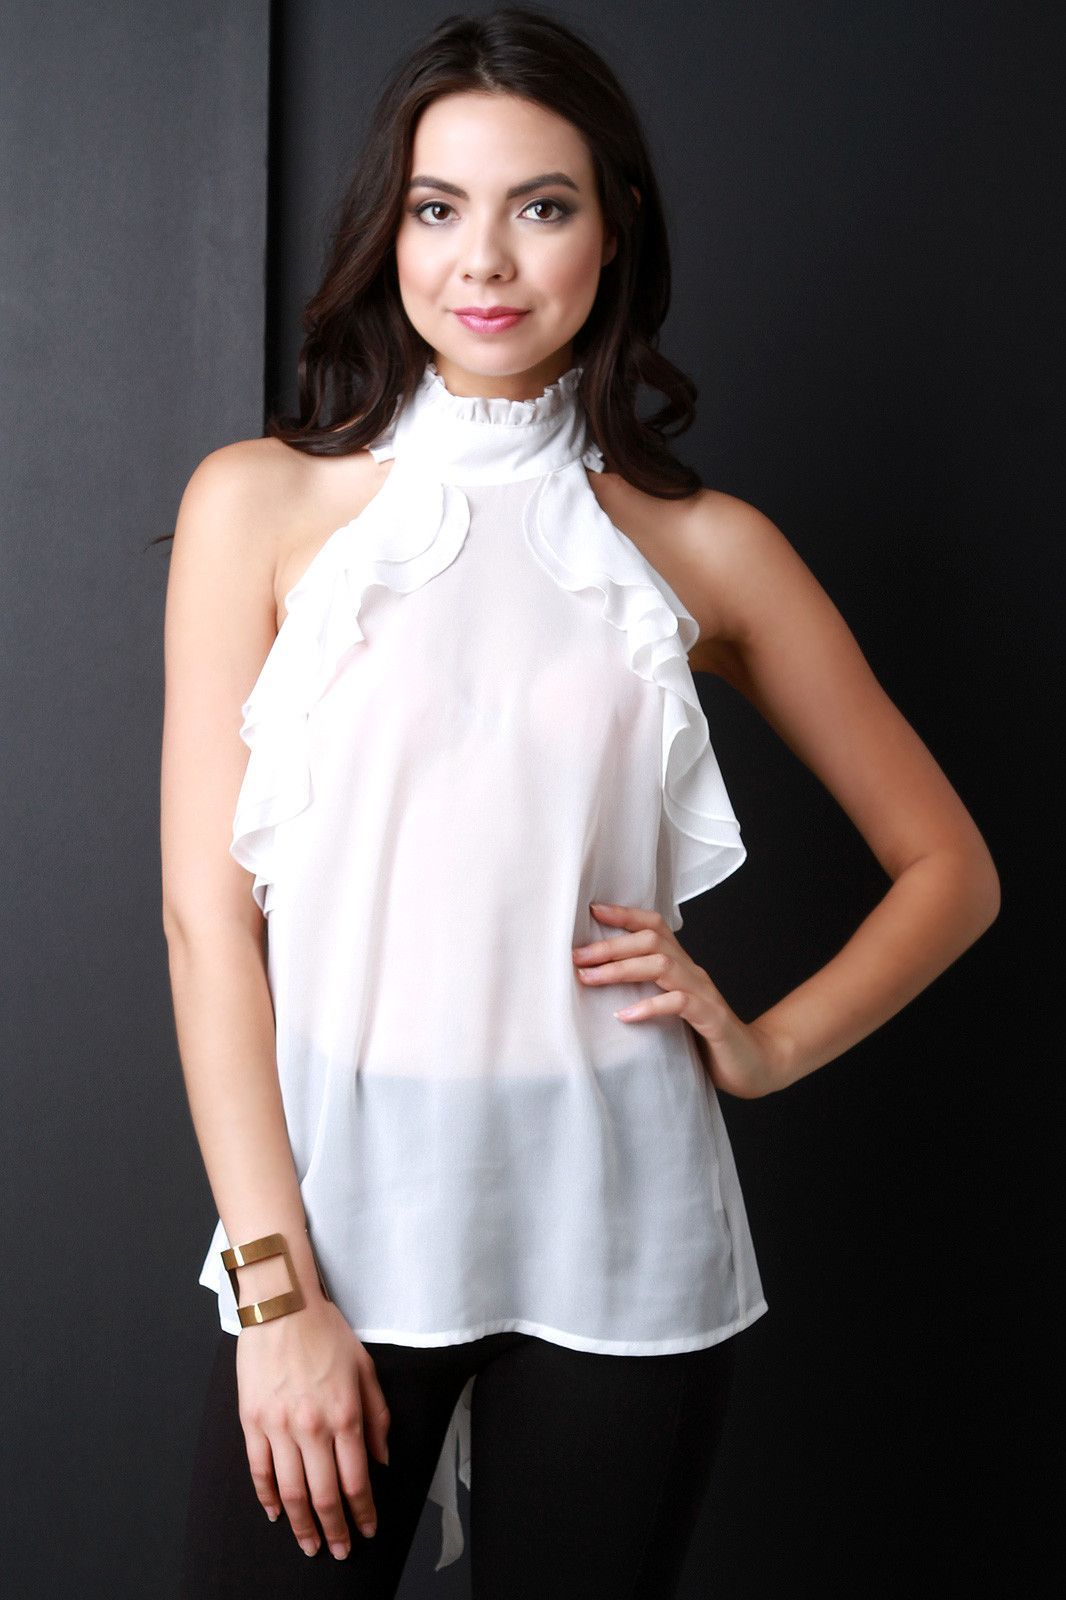 Semi-Sheer Mock Neck Bow Tie Ruffled Top. Semi-Sheer Mock Neck Bow Tie Ruffled Top